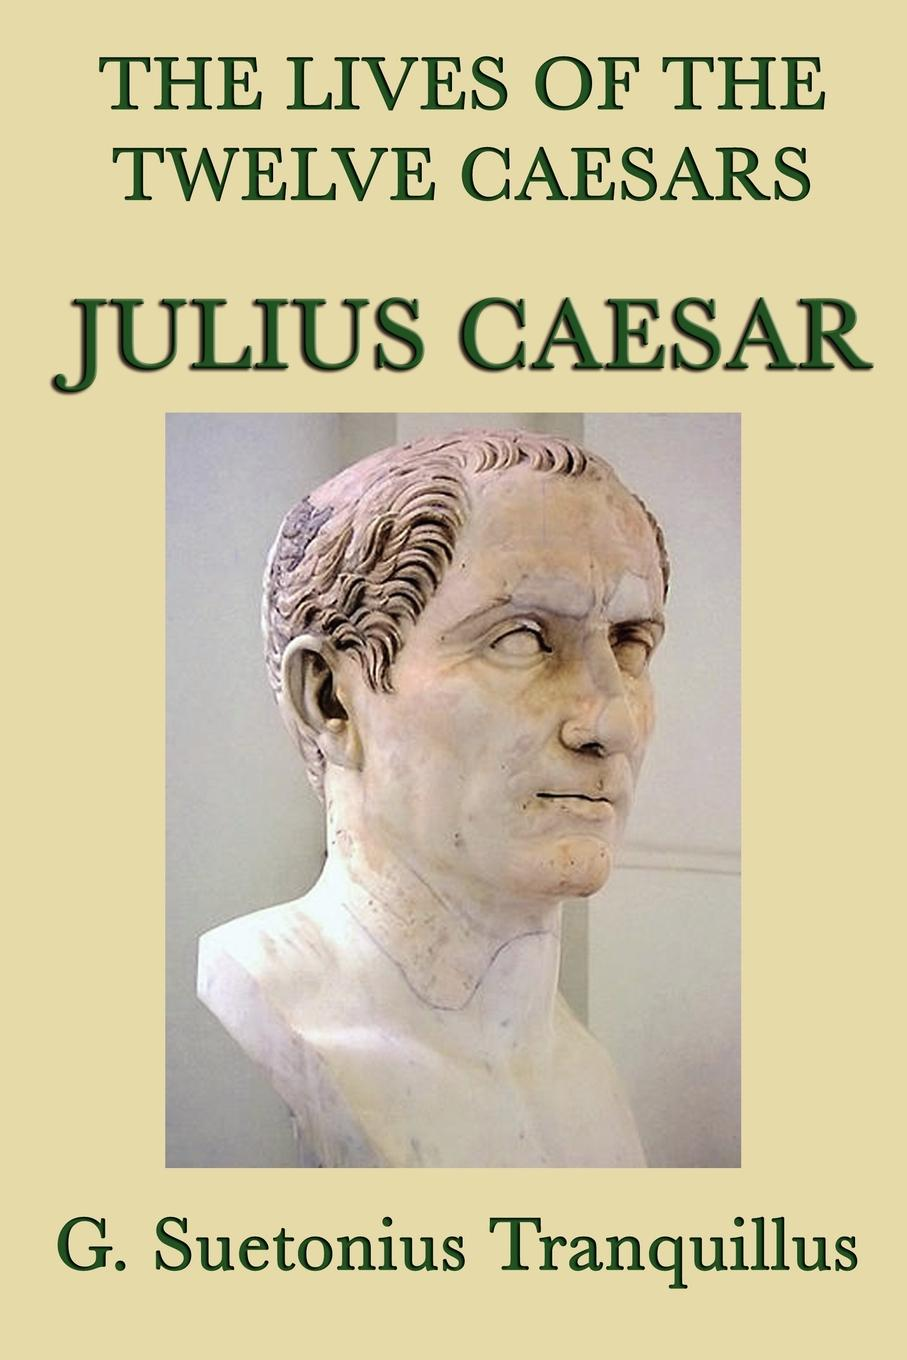 The Lives of the Twelve Caesars: Julius Caesar By: G. Suetonias Tranquillis